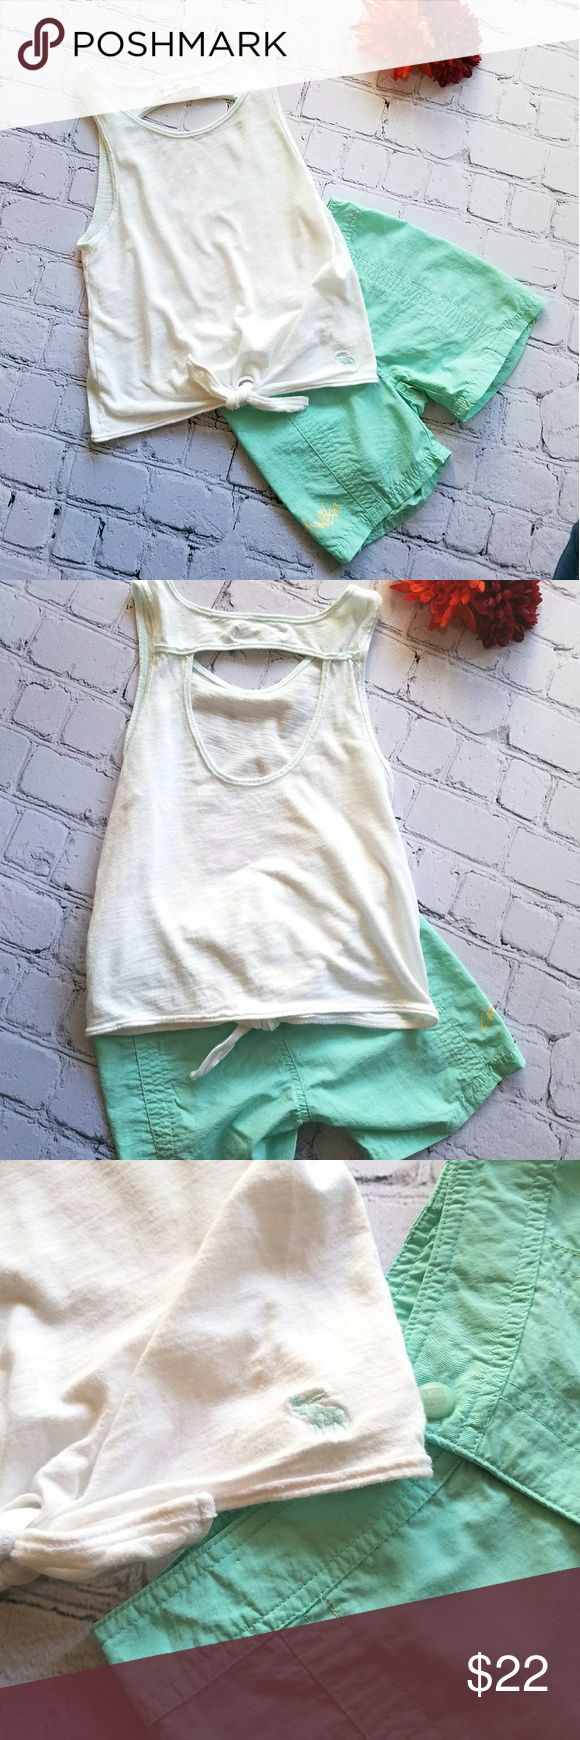 Abercrombie Tank & Columbia Shorts Girls Sz M 6 Cute outfit combo!!! Great condition. Abercrombie & Fitch girls tank. White with teal stitching. Size M. Cutout back, tie front. Columbia teal nylon shorts.  Size 6. Adjustable waist. Columbia logo on side. Great for water sports or hiking. No pockets. Both machine washable. Abercombie Kids Matching Sets